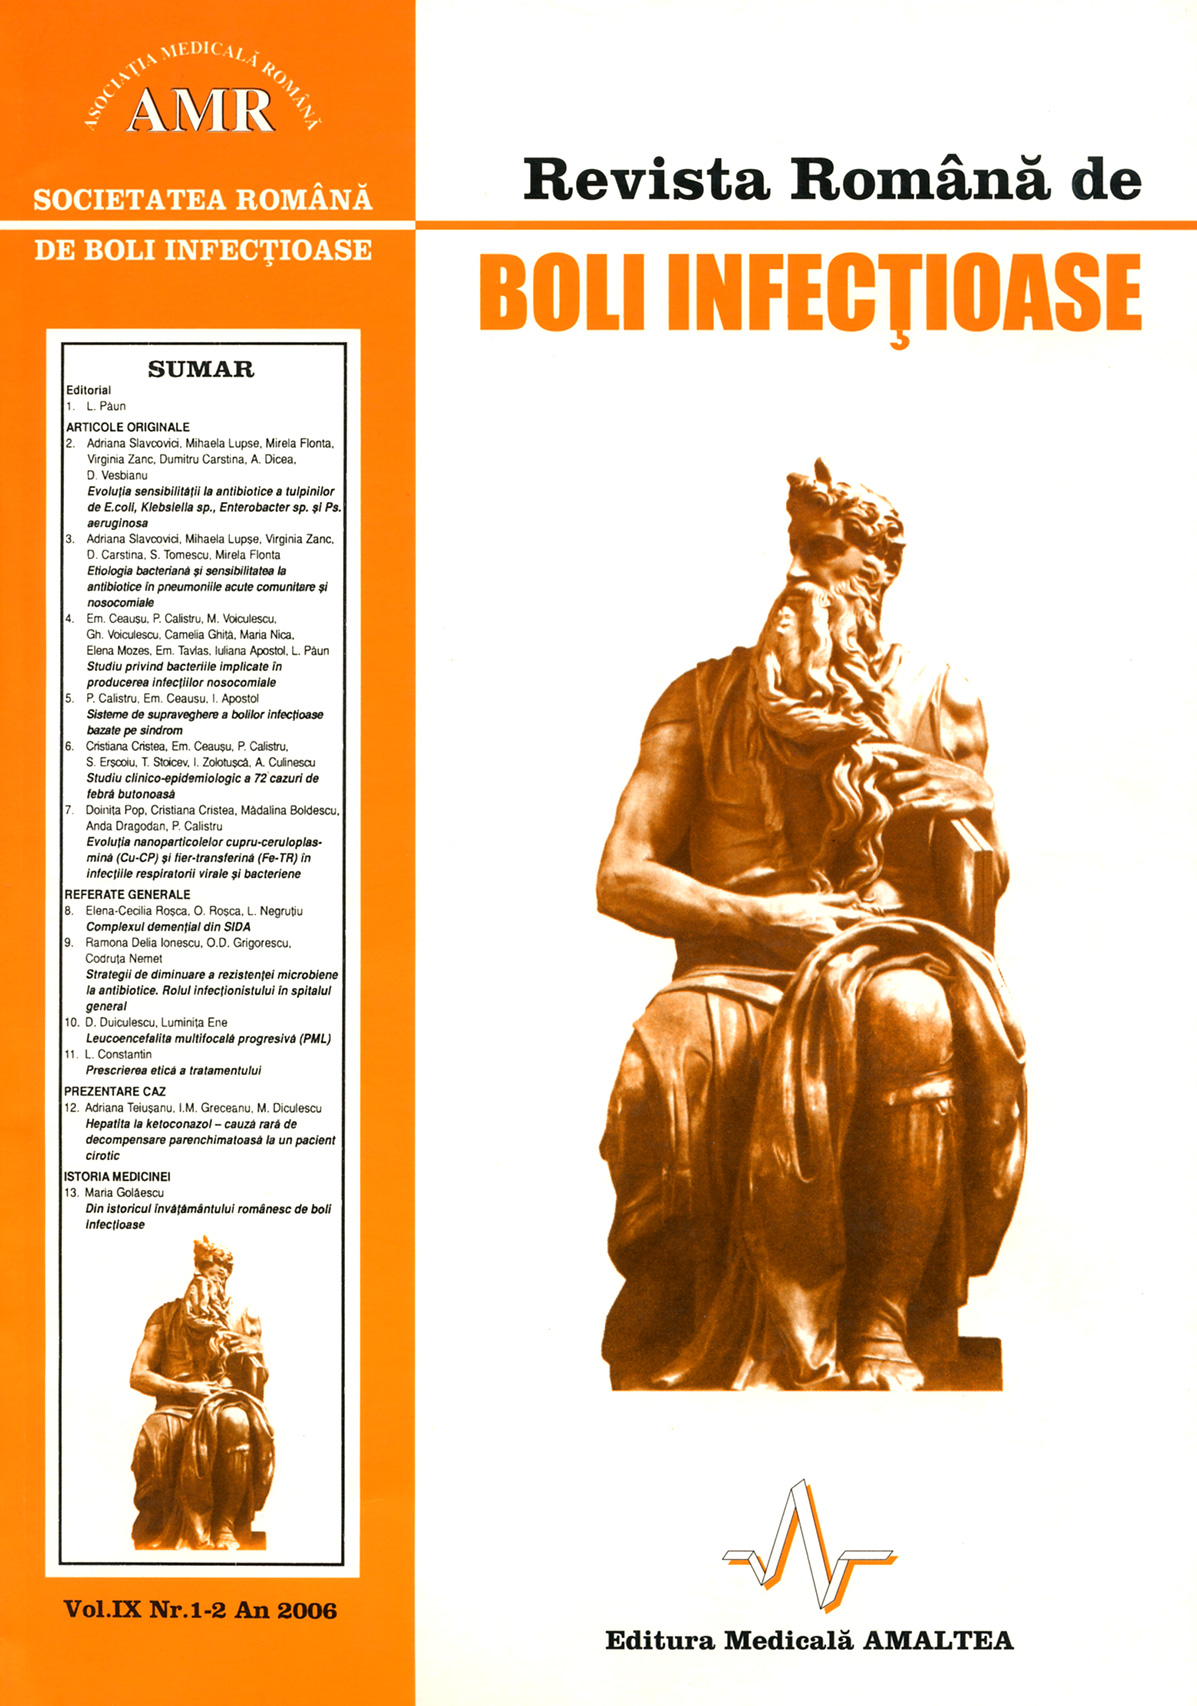 Revista Romana de Boli Infectioase | Vol. IX, No. 1-2, 2006